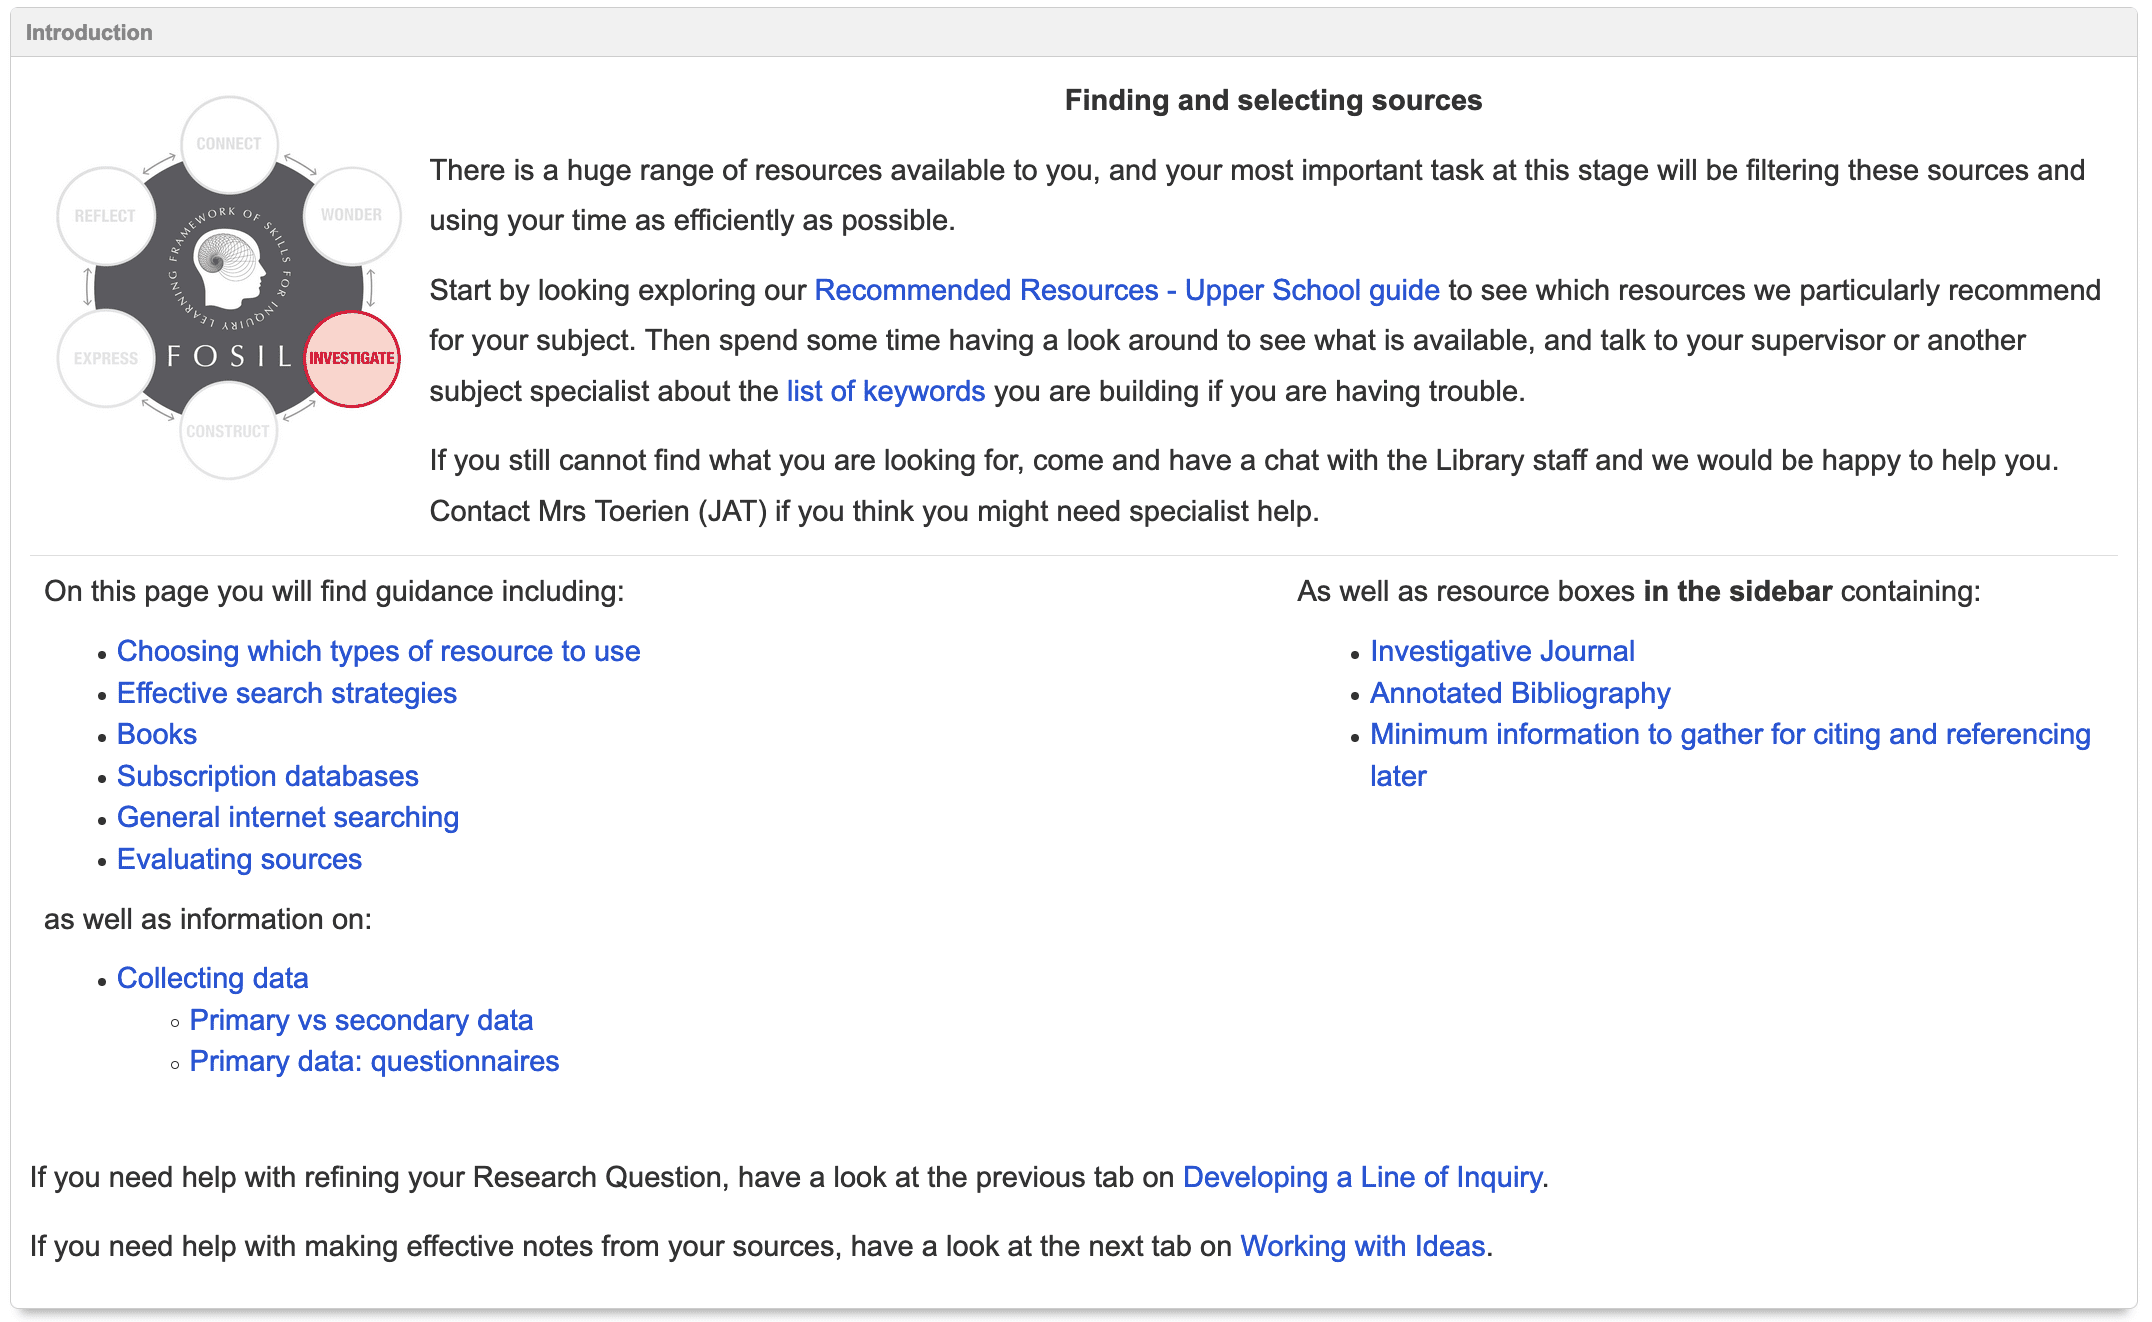 Finding and selecting sources contents list